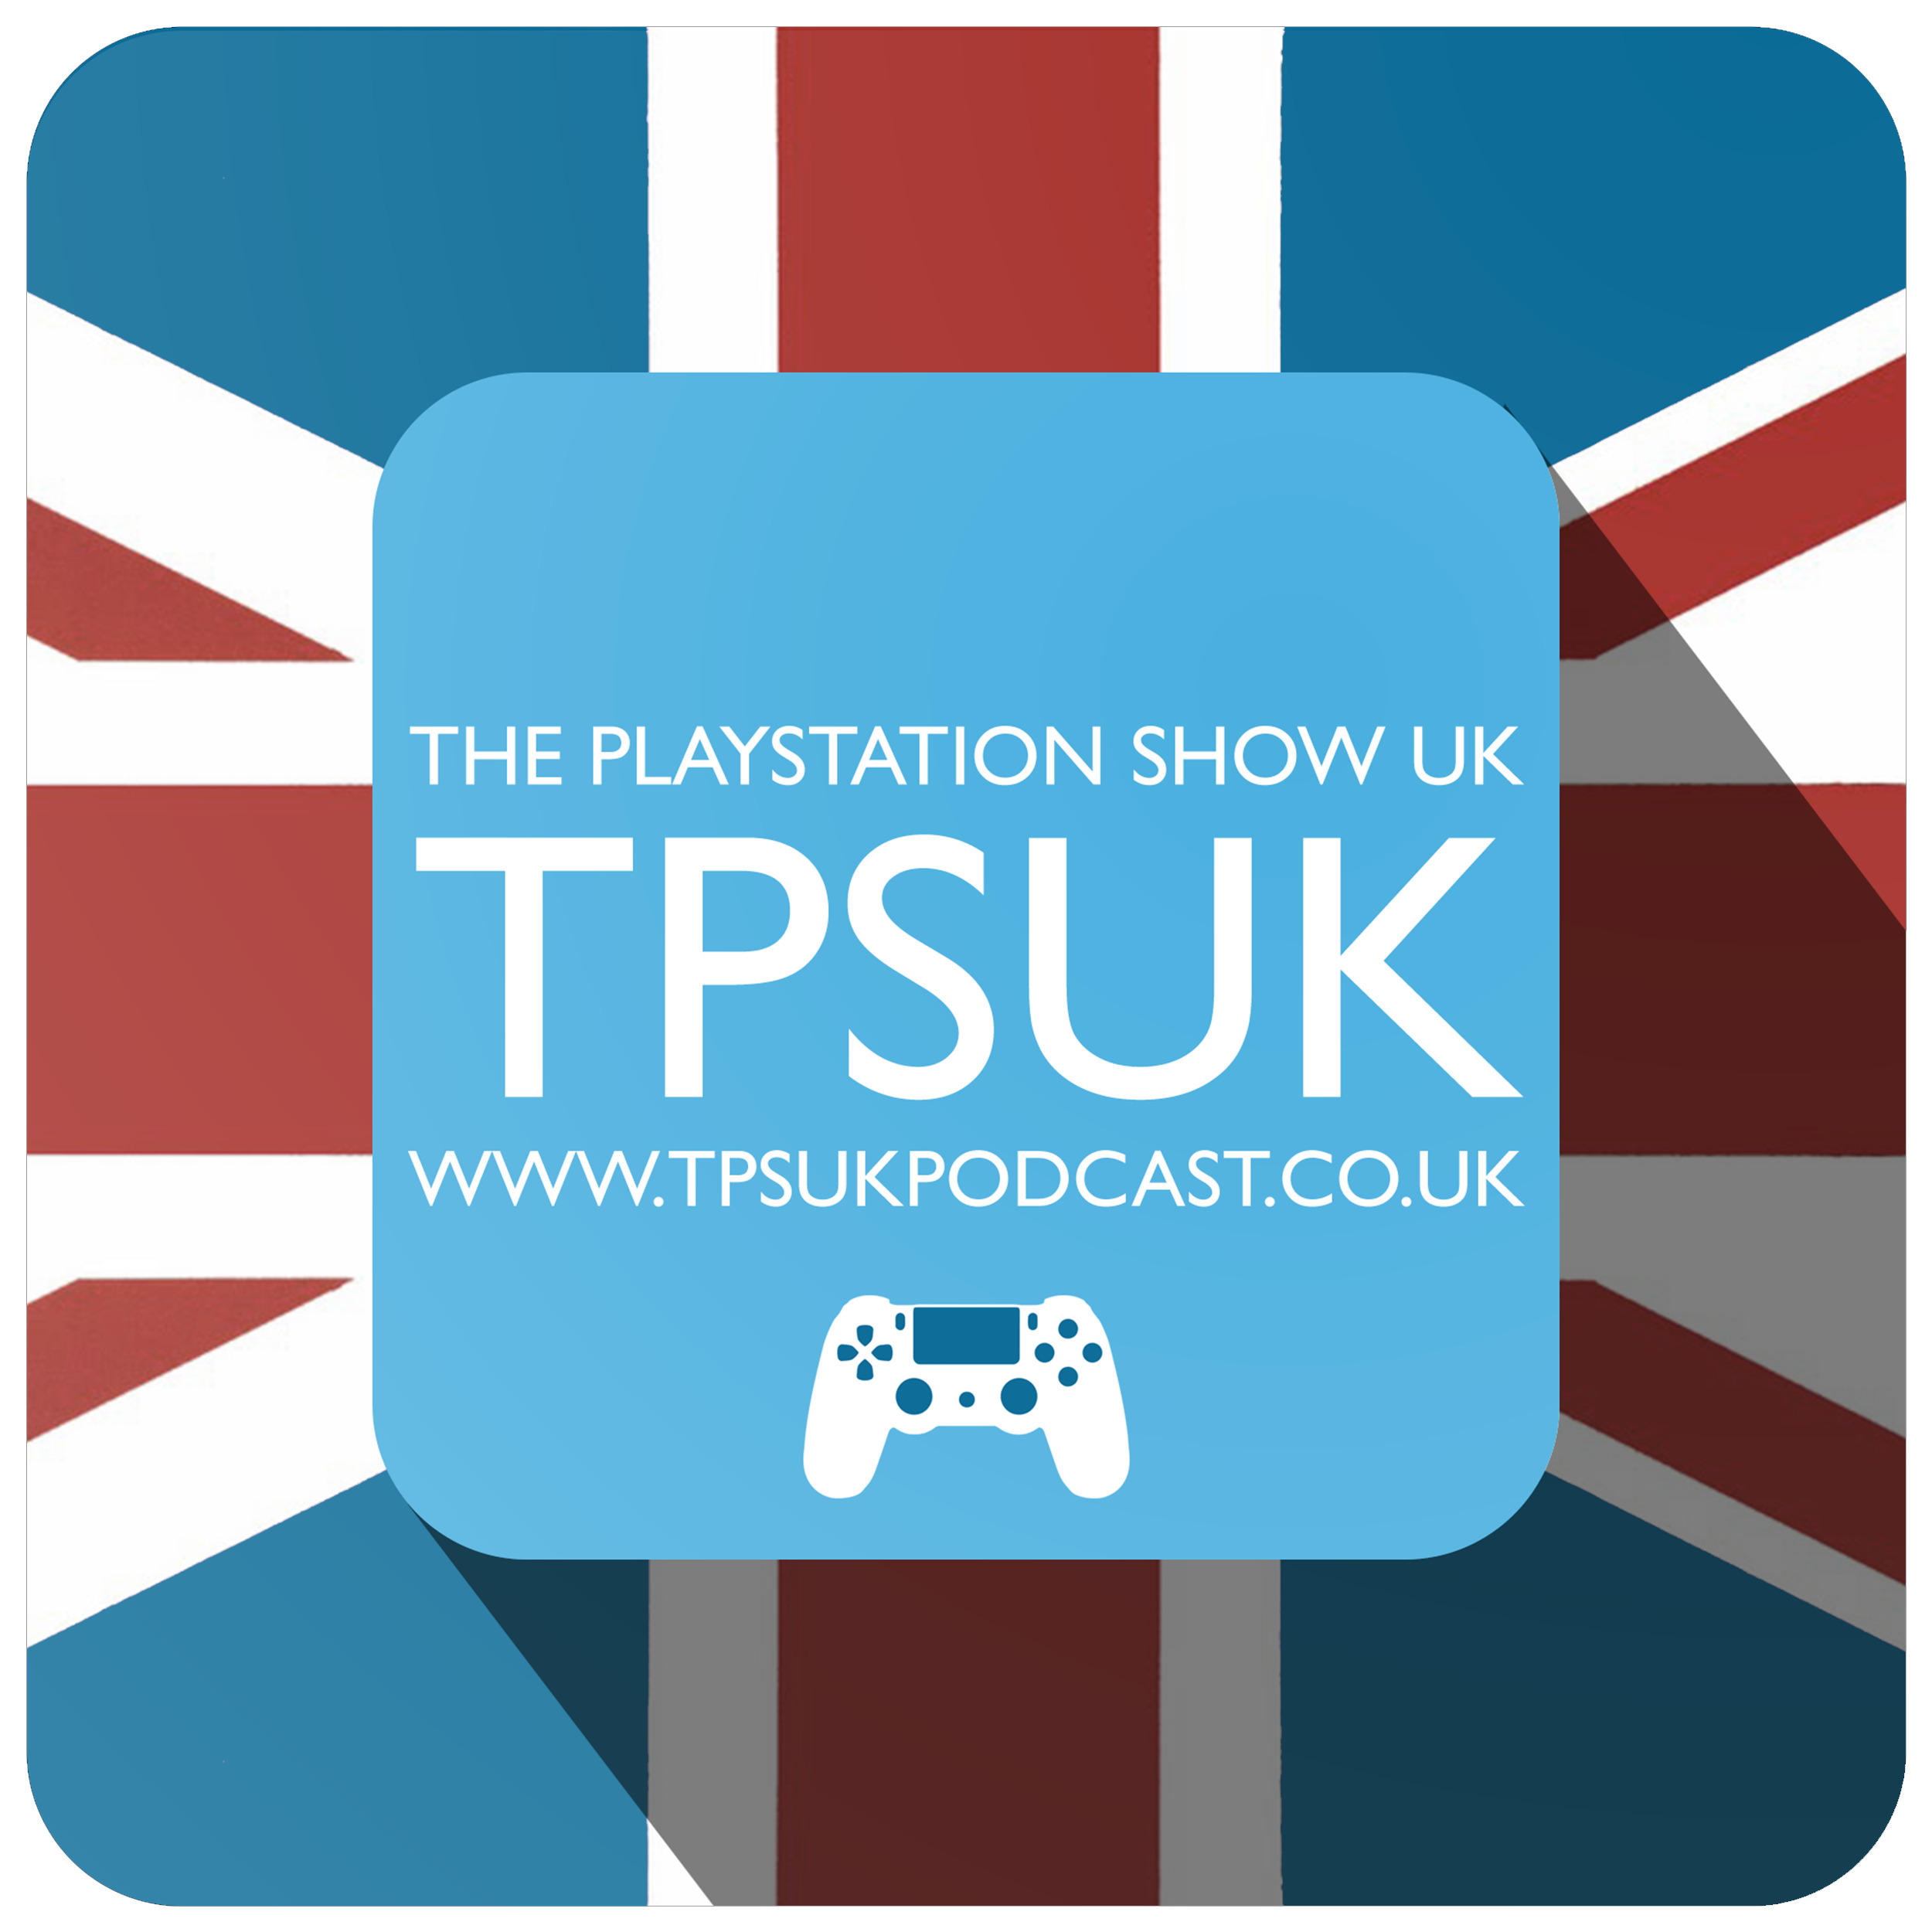 The Playstation Show UK